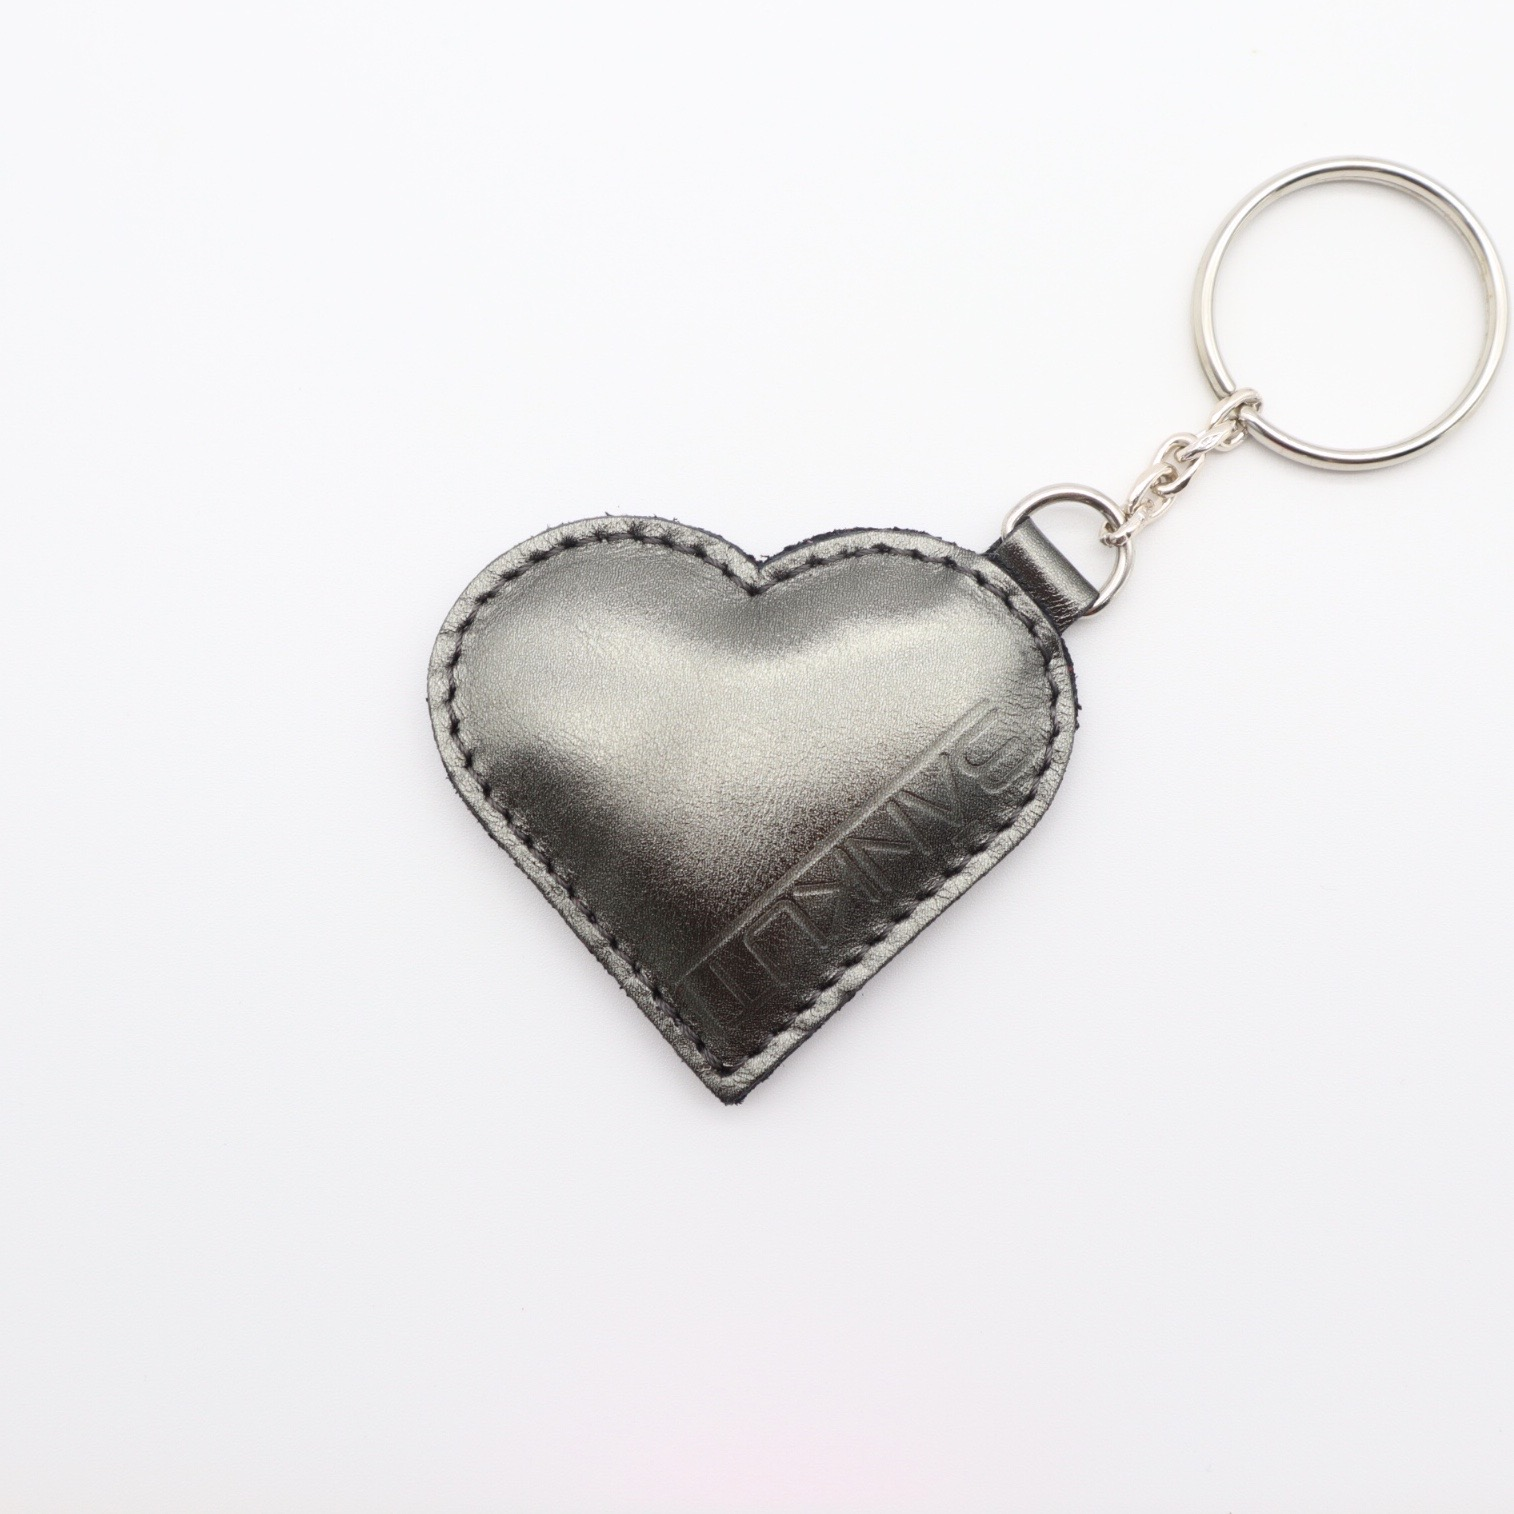 LEATHER HEART KEYCHARM METAL